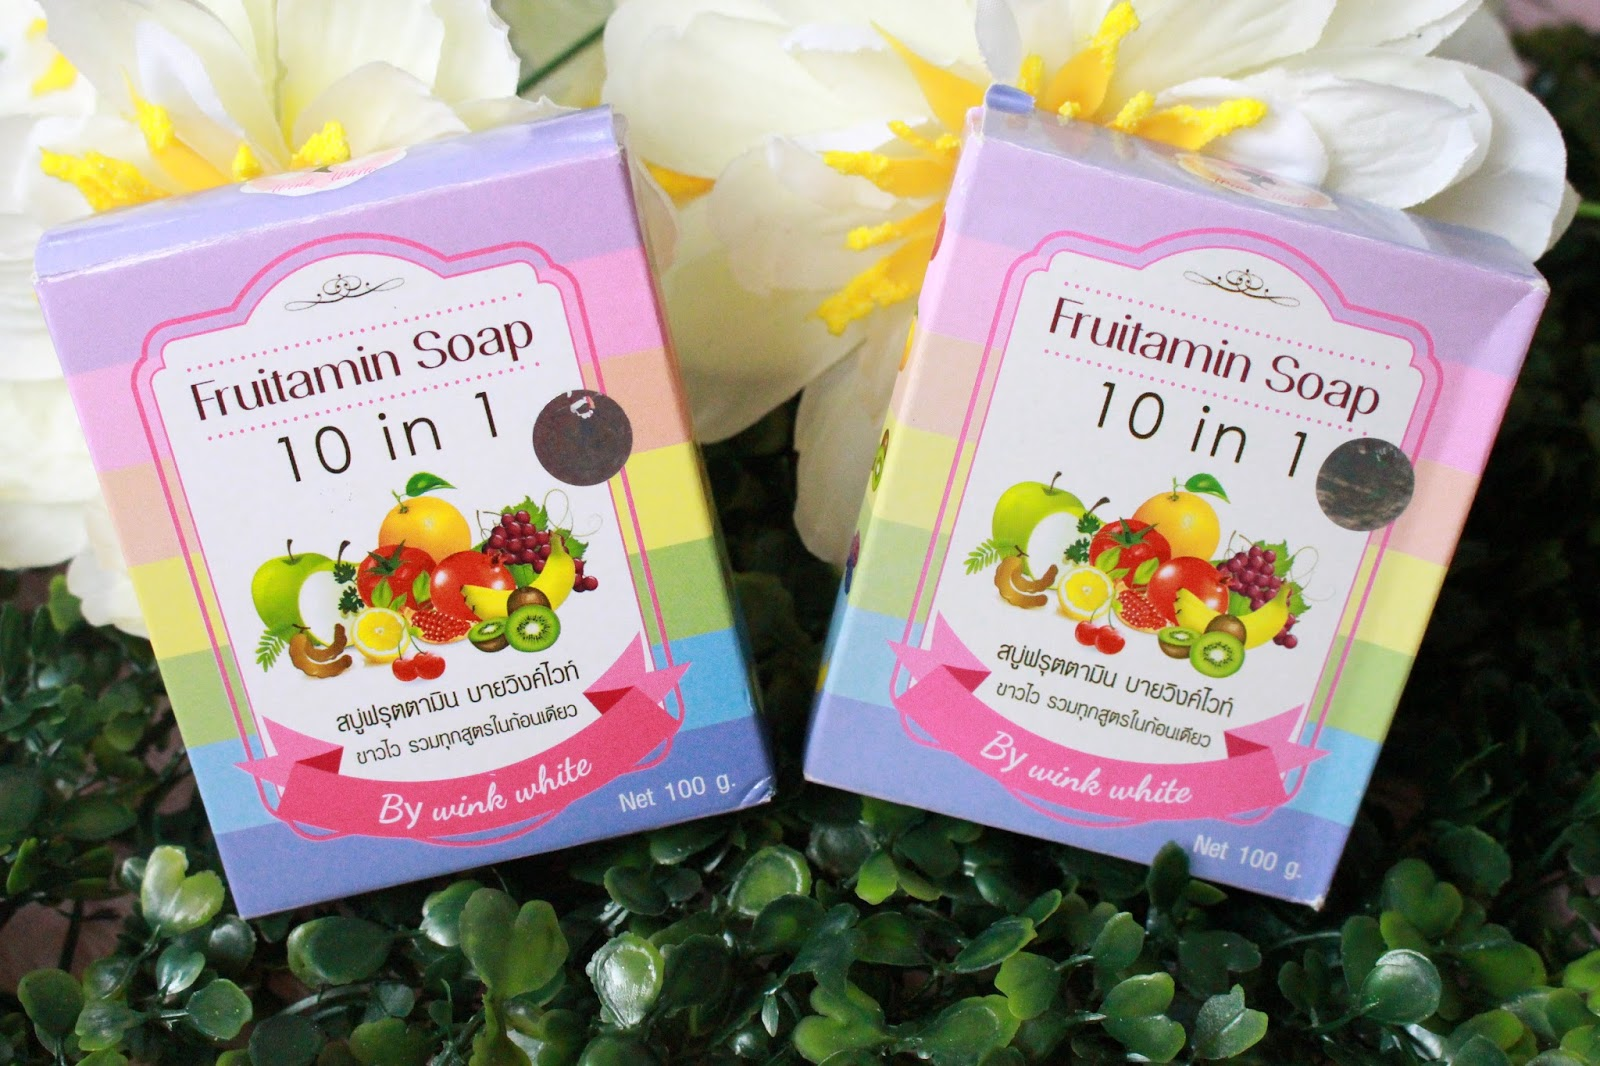 Thailand Soap Haul Bloominzahra Fruitamin 10 In 1 By Wink White 8000